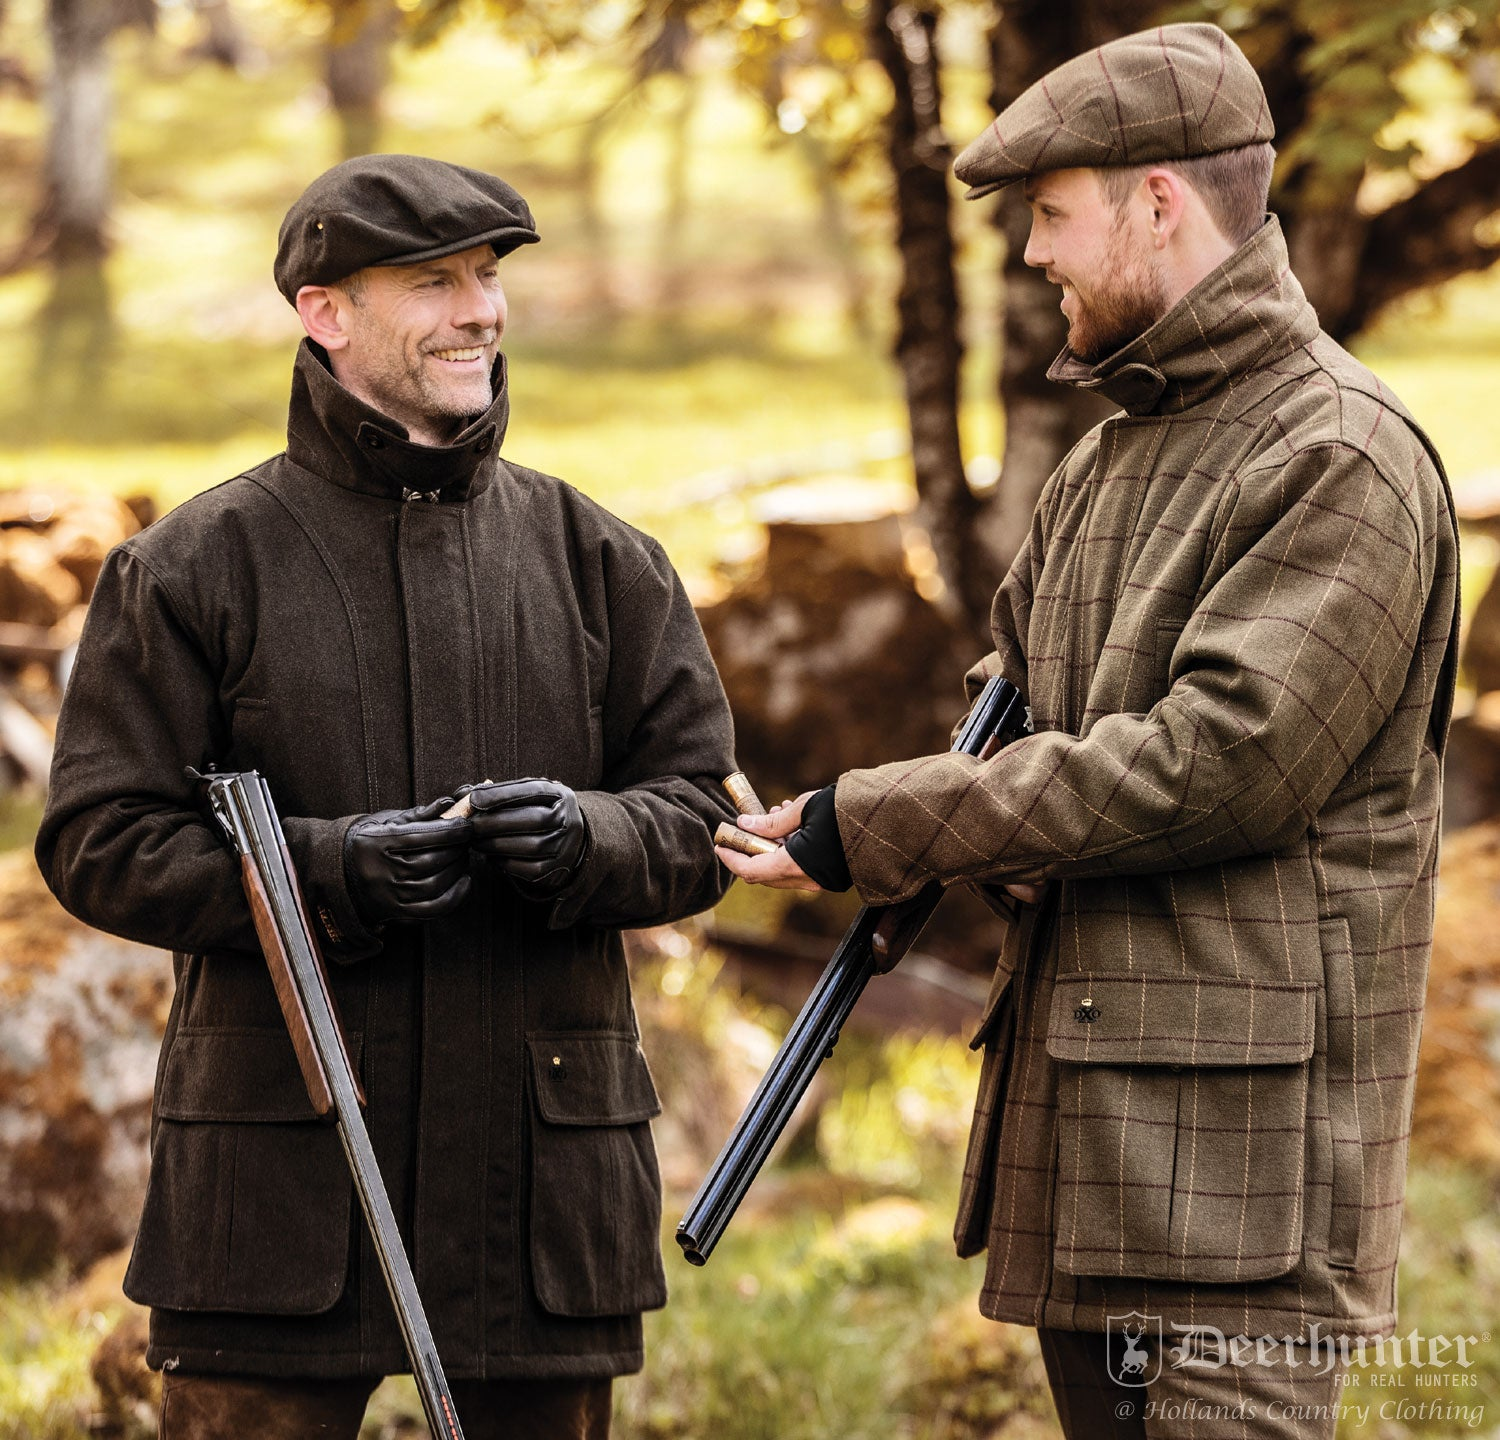 deerhunter shooting clothing  loden wool jacket